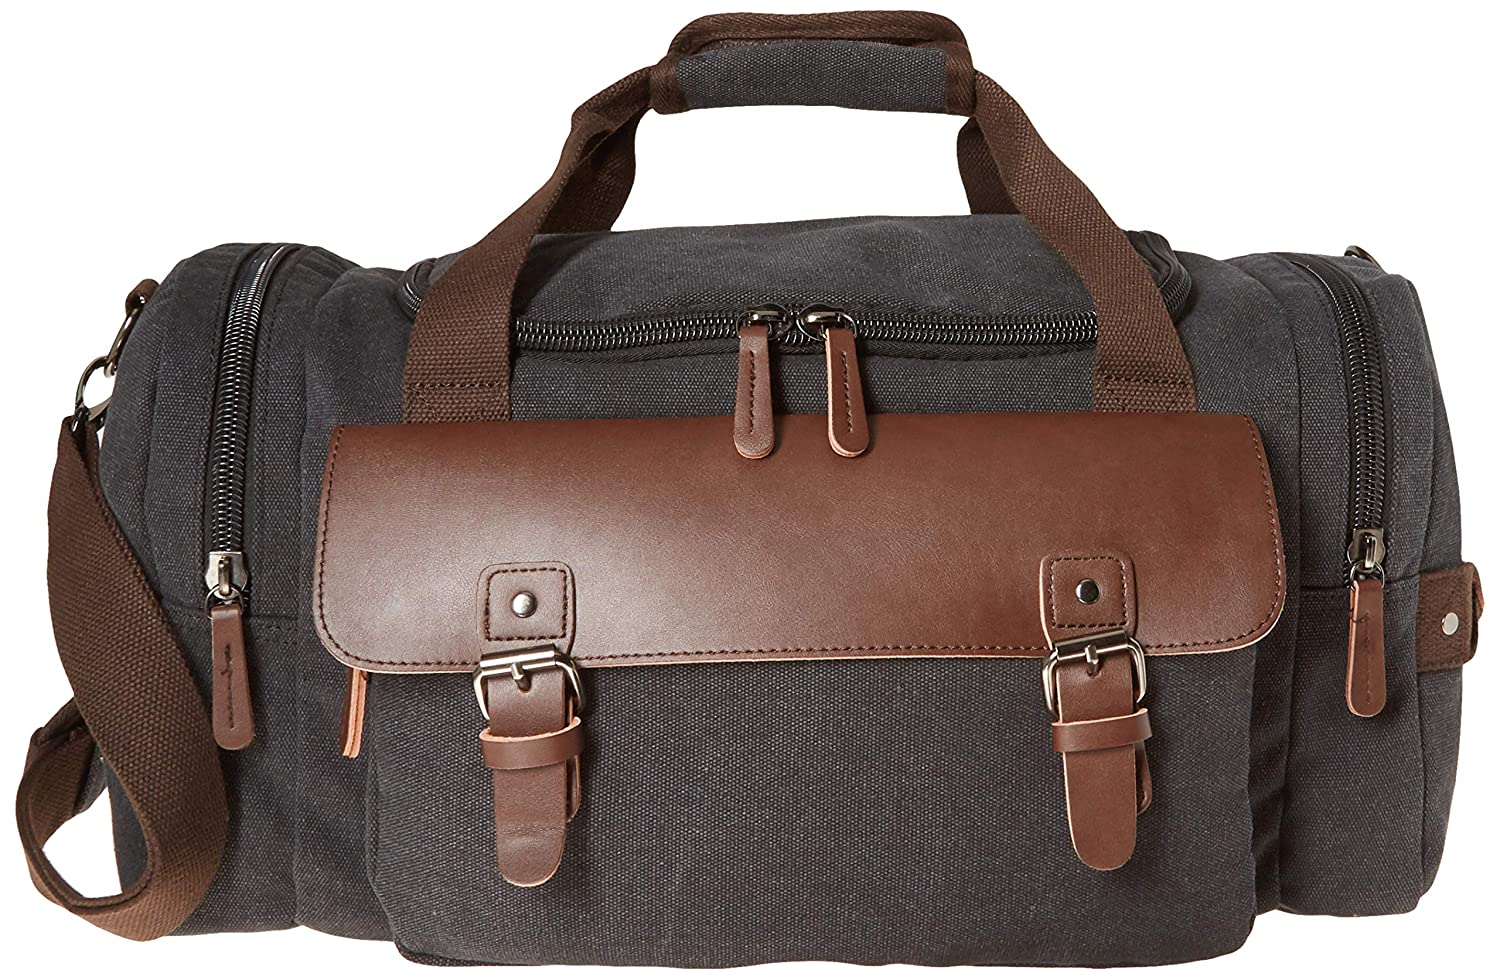 d5c9d5aa61f683 Canvas Duffel Bag, Aidonger Vintage Canvas Weekender Bag Travel Bag Sports  Duffel with Shoulder Strap (Black21): Amazon.ca: Luggage & Bags